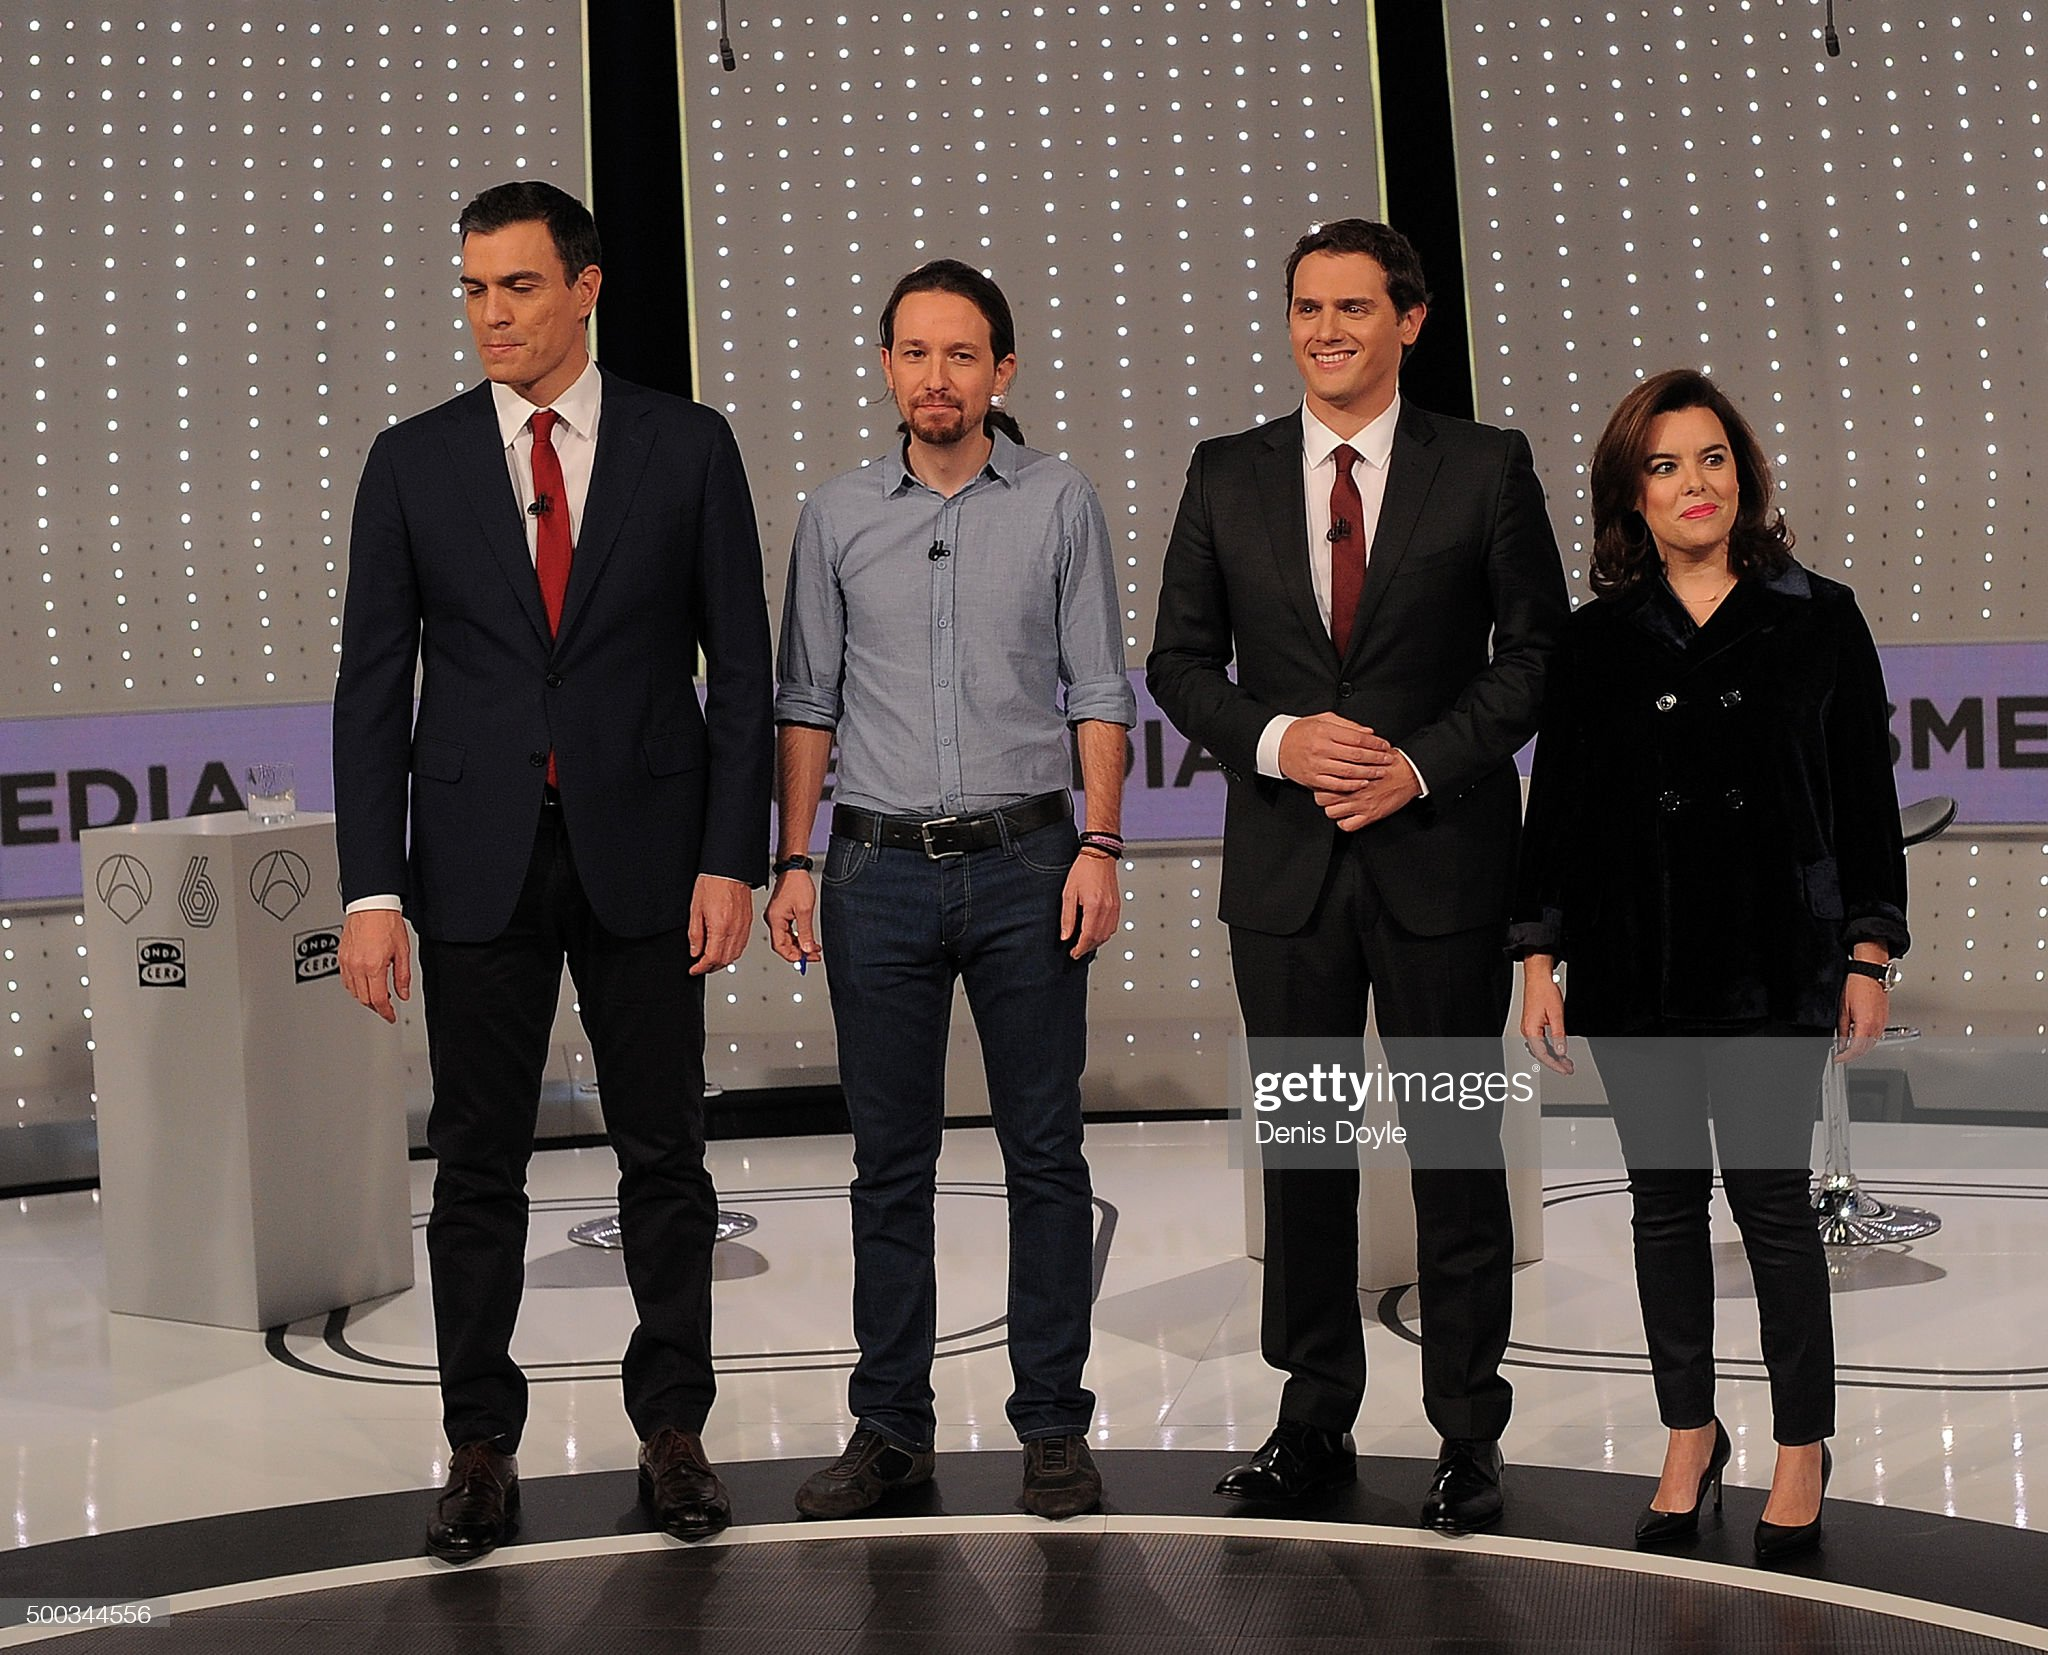 ¿Cuánto mide Albert Rivera? - Estatura real: 1,80 - Página 9 From-l-to-r-party-leaders-pedro-sanchez-of-the-psoe-socialist-party-picture-id500344556?s=2048x2048